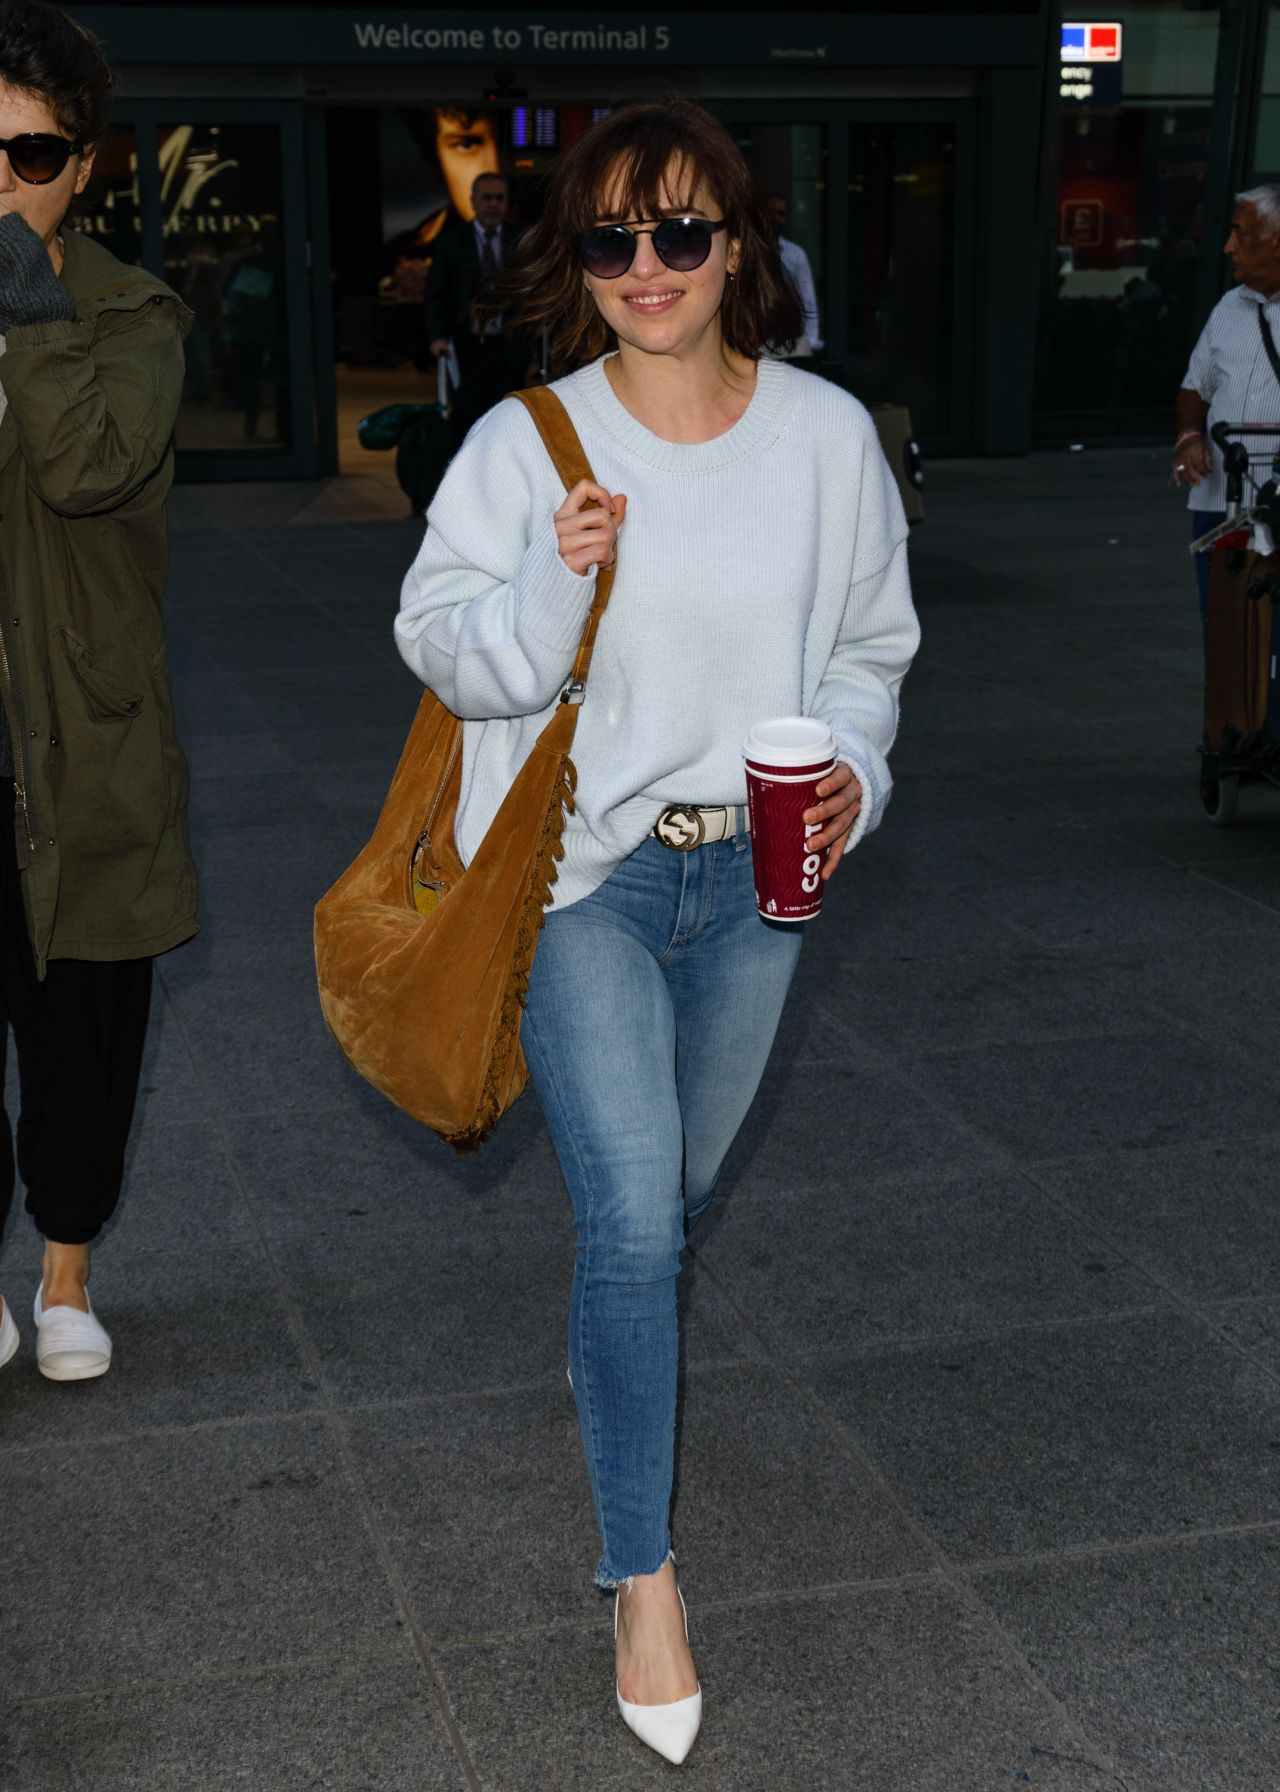 Emilia Clarke in Tight Jeans - Arriving at Heathrow ...